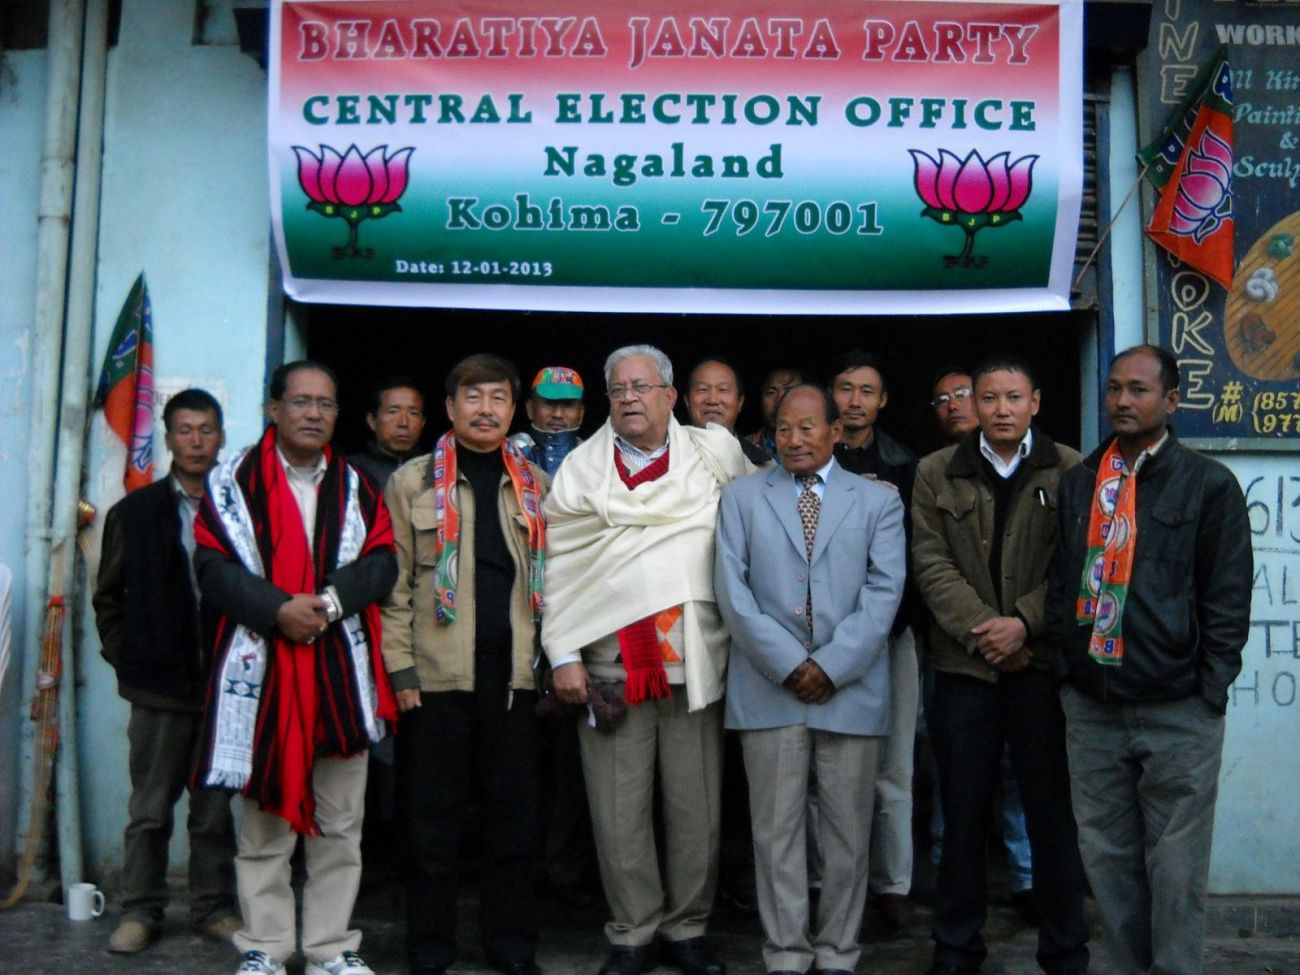 PB Acharya front (3rd left front), Election in-charge of Nagaland and Meghalaya. Former AP MP Tapir Gao (2nd left front), BJP National Secretary, M Chuba Ao (1st left front), State BJP President are also seen in the picture. NEPS Photo